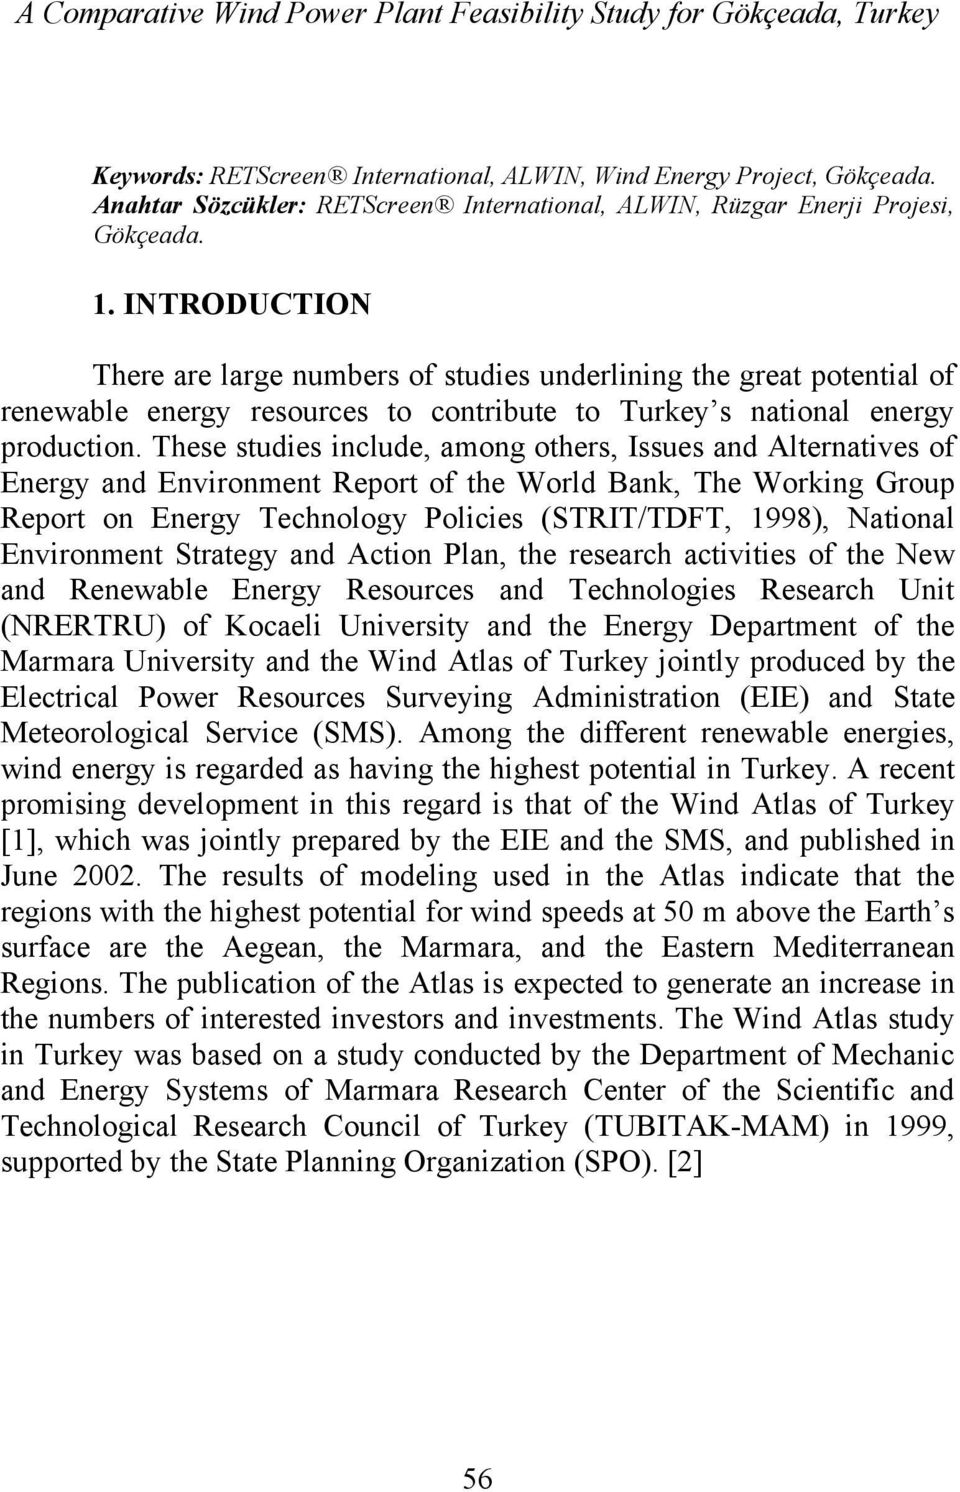 INTRODUCTION There are large numbers of studies underlining the great potential of renewable energy resources to contribute to Turkey s national energy production.